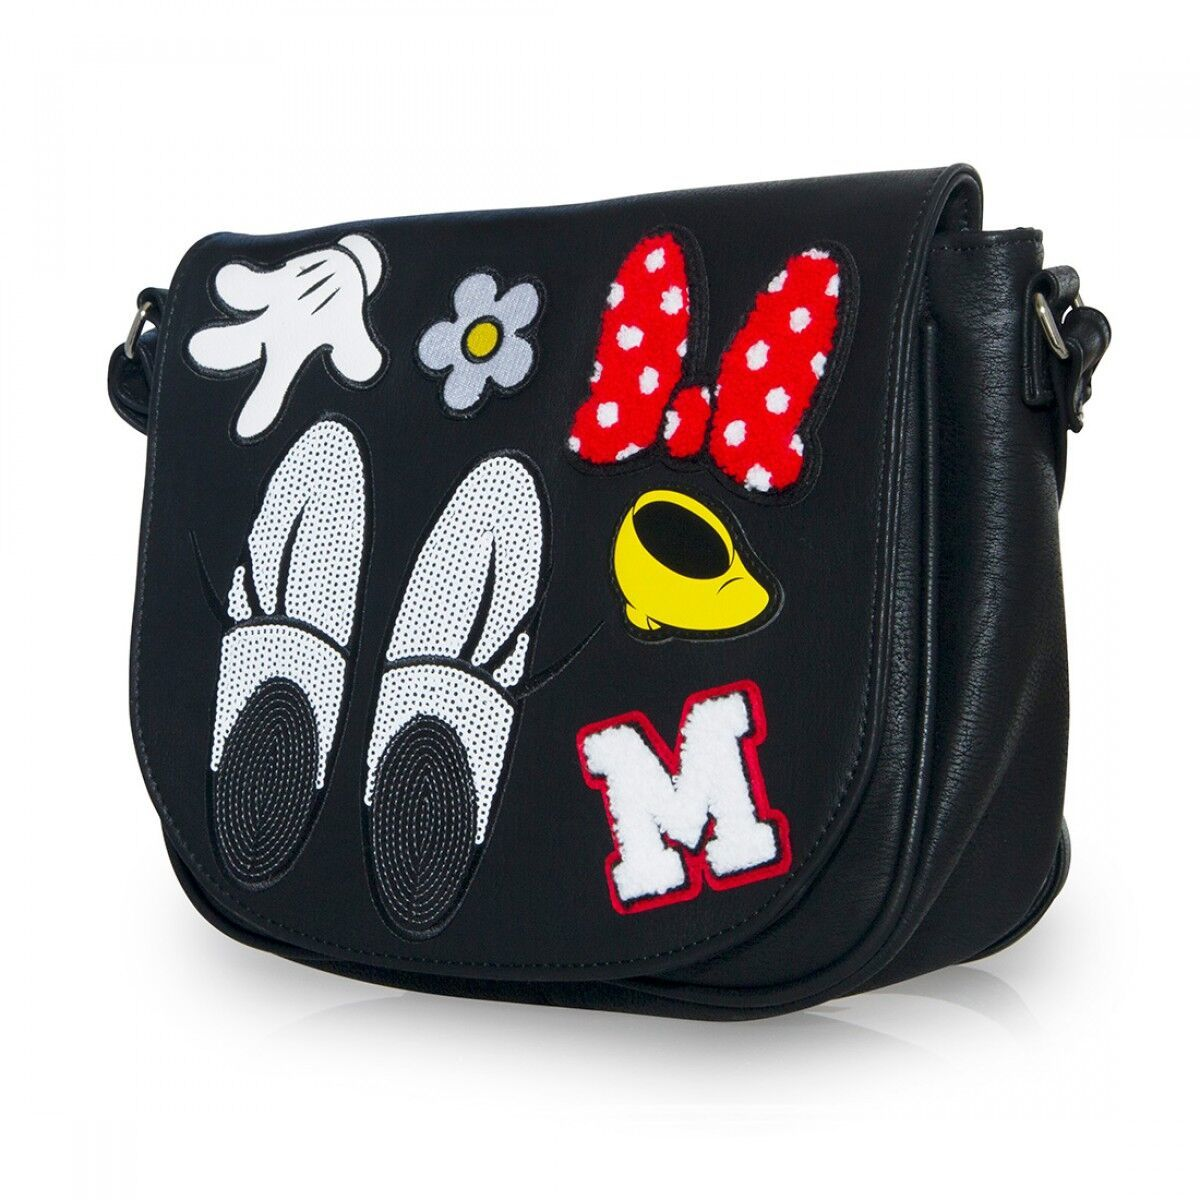 6304b2c7fecb ... Loungefly: Disney Minnie Patches - Crossbody Bag image ...